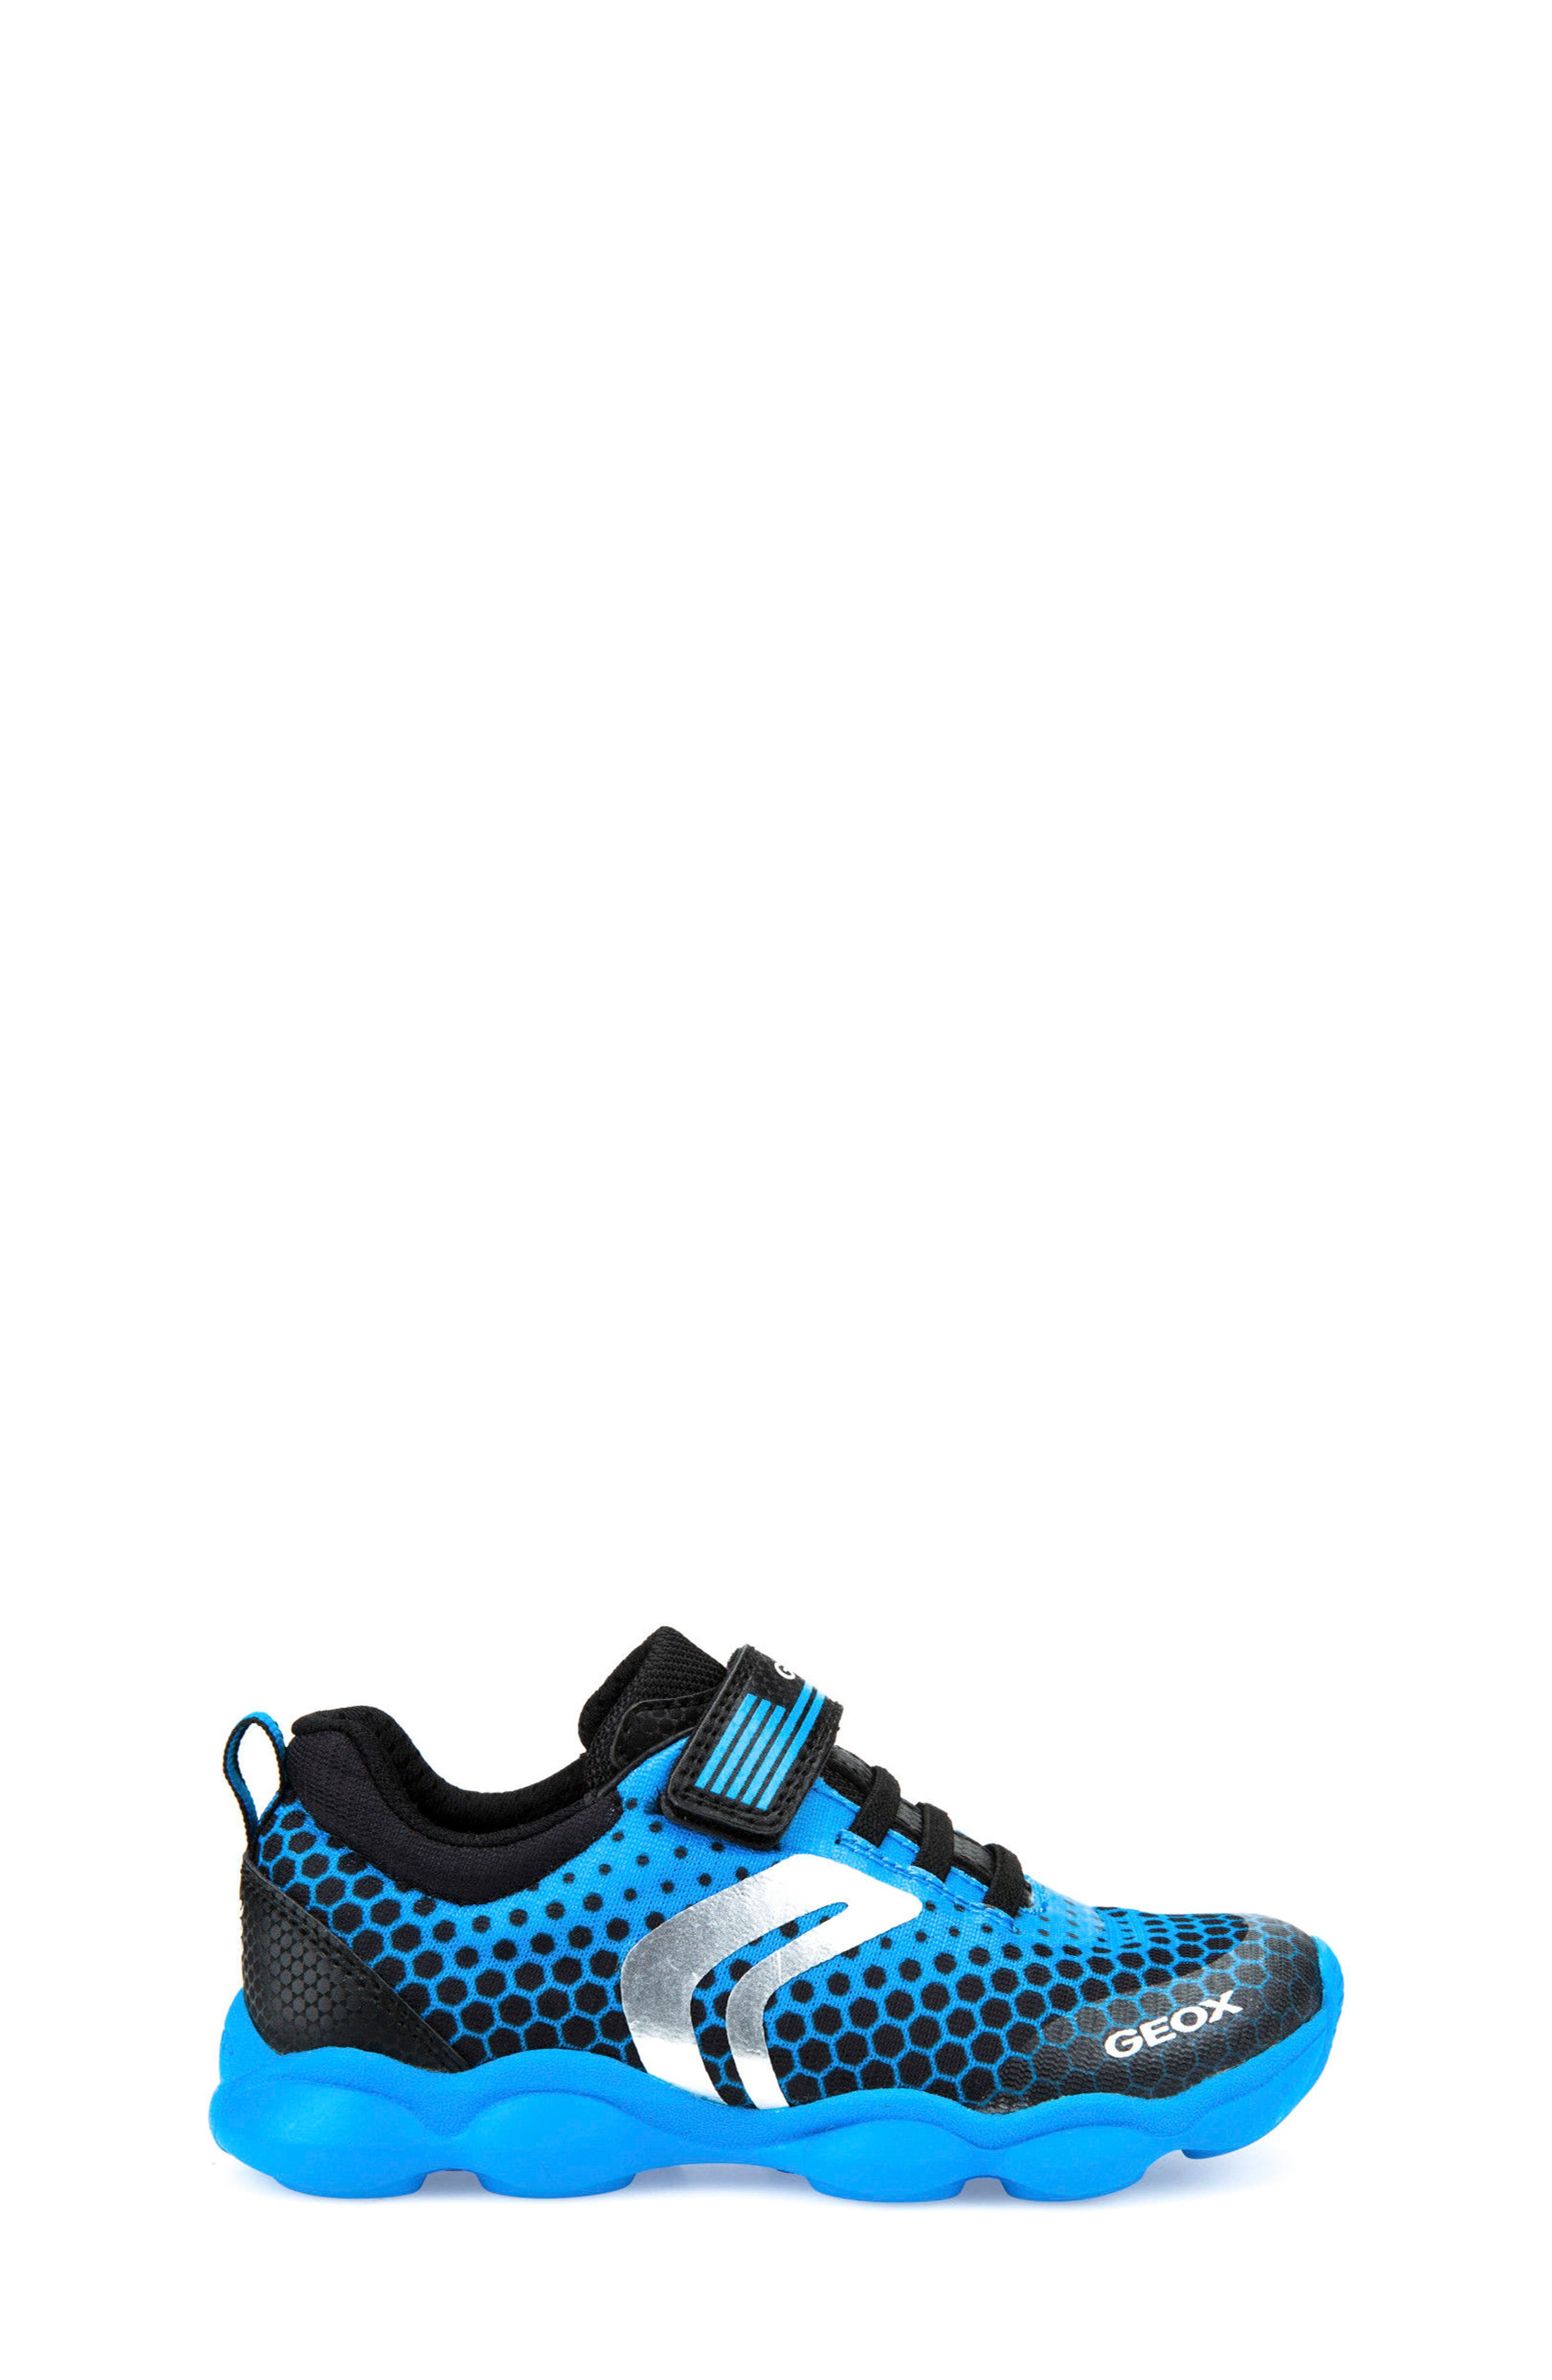 Munfrey Sneaker,                             Alternate thumbnail 3, color,                             Light Blue/ Black